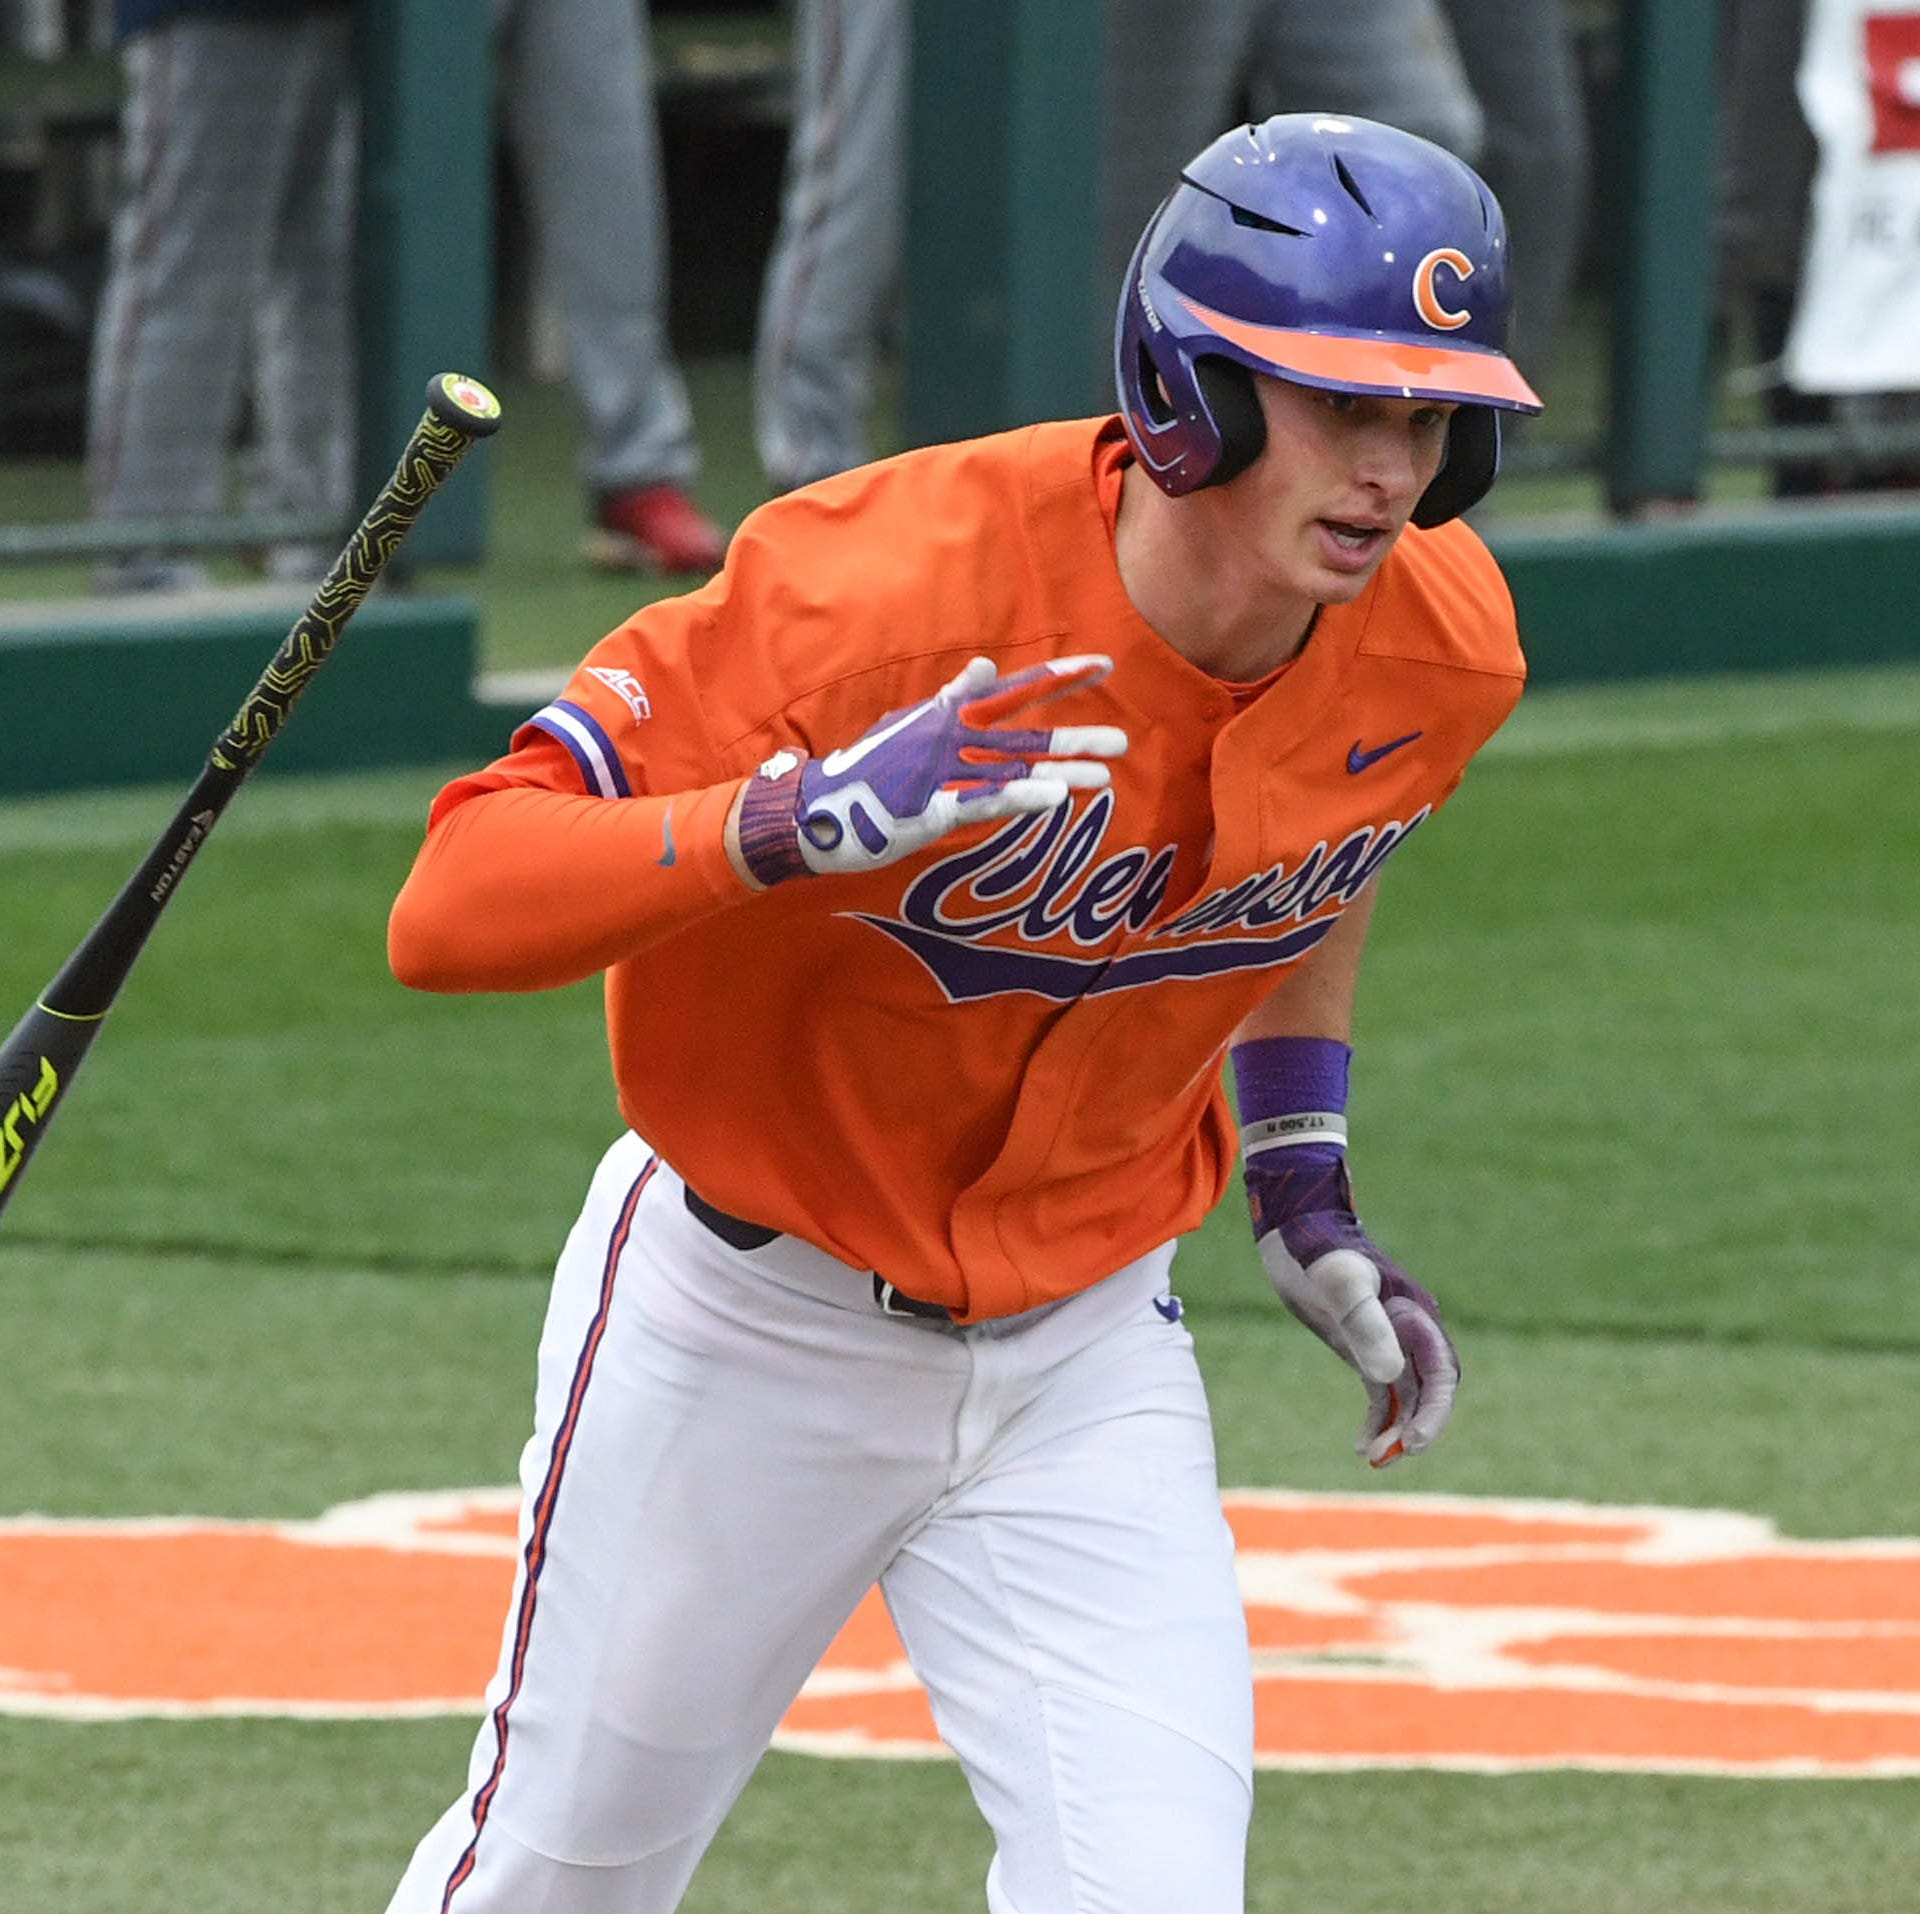 Clemson baseball opens 2019 season with 6-2 victory against South Alabama